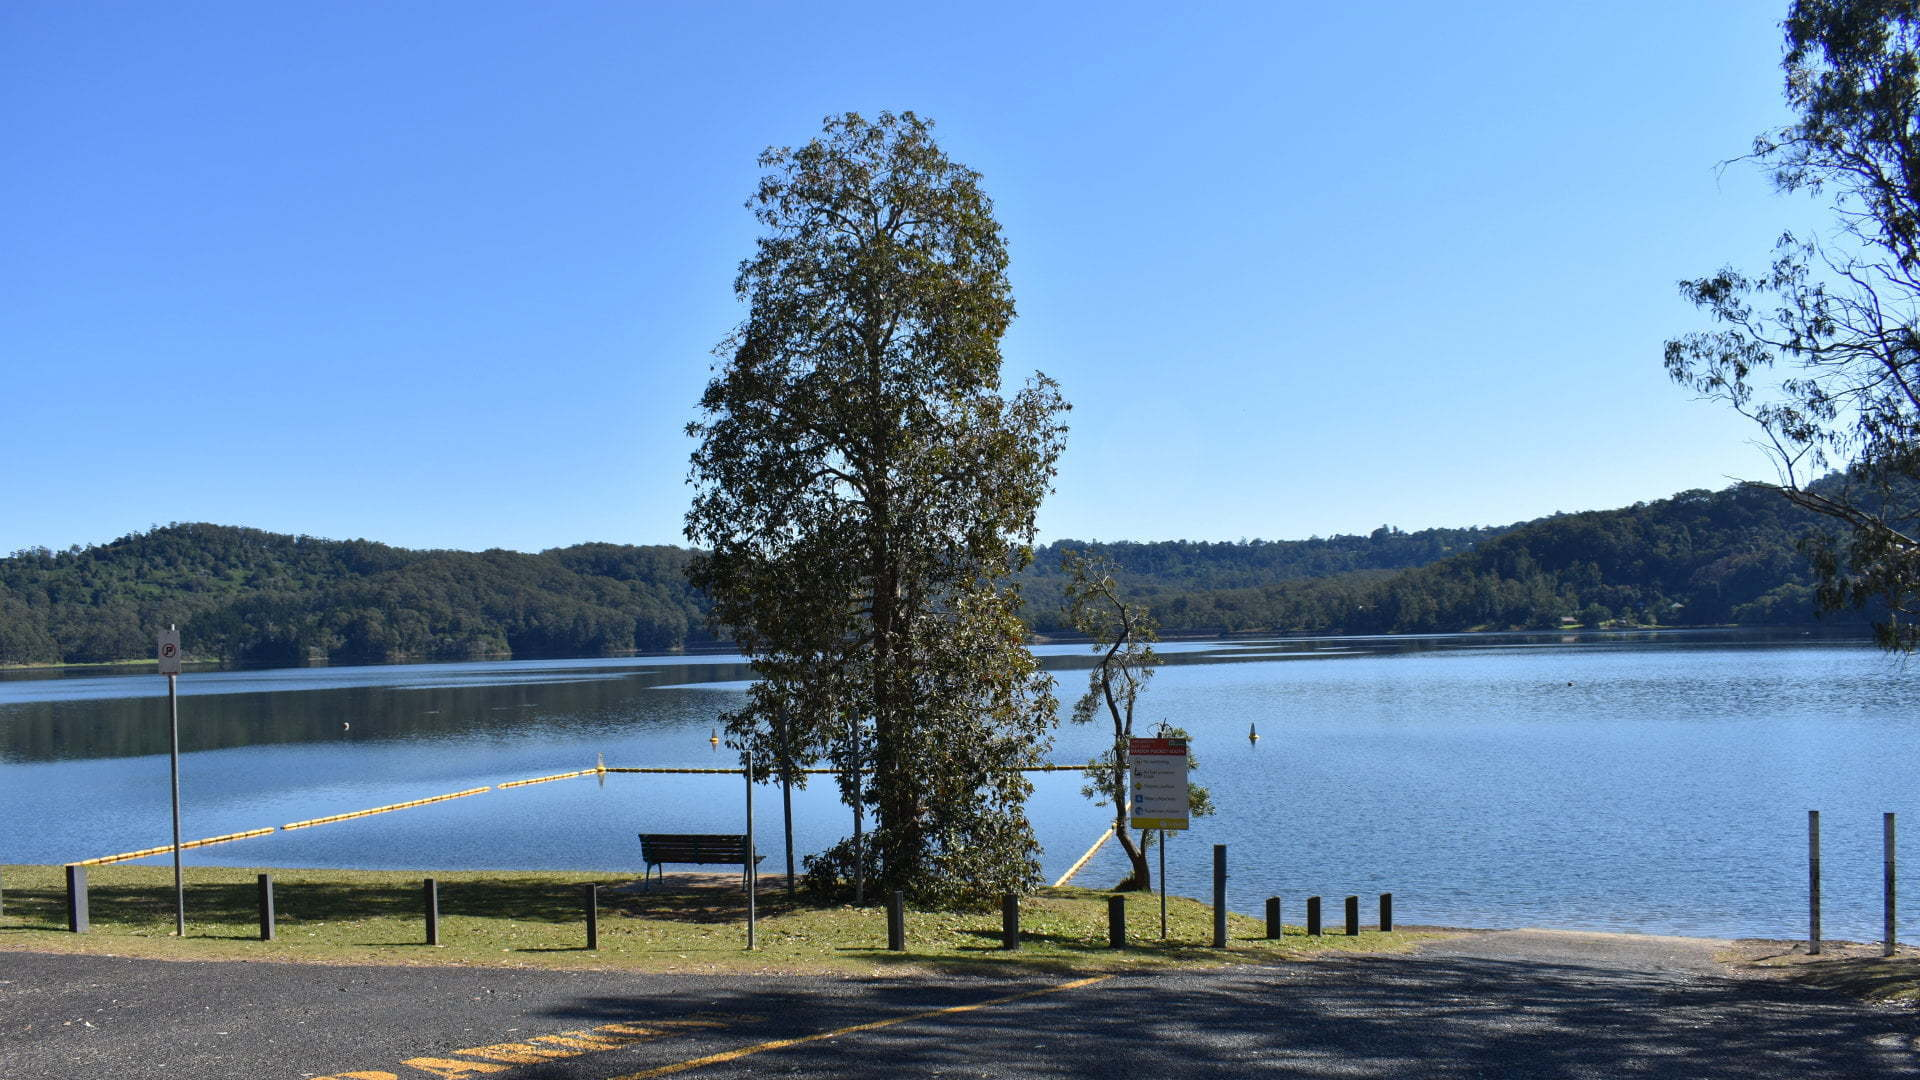 View of lake with boat ramp and swimming area, at the Baroon Pocket Dam of Lake Baroon at the North Maleny area